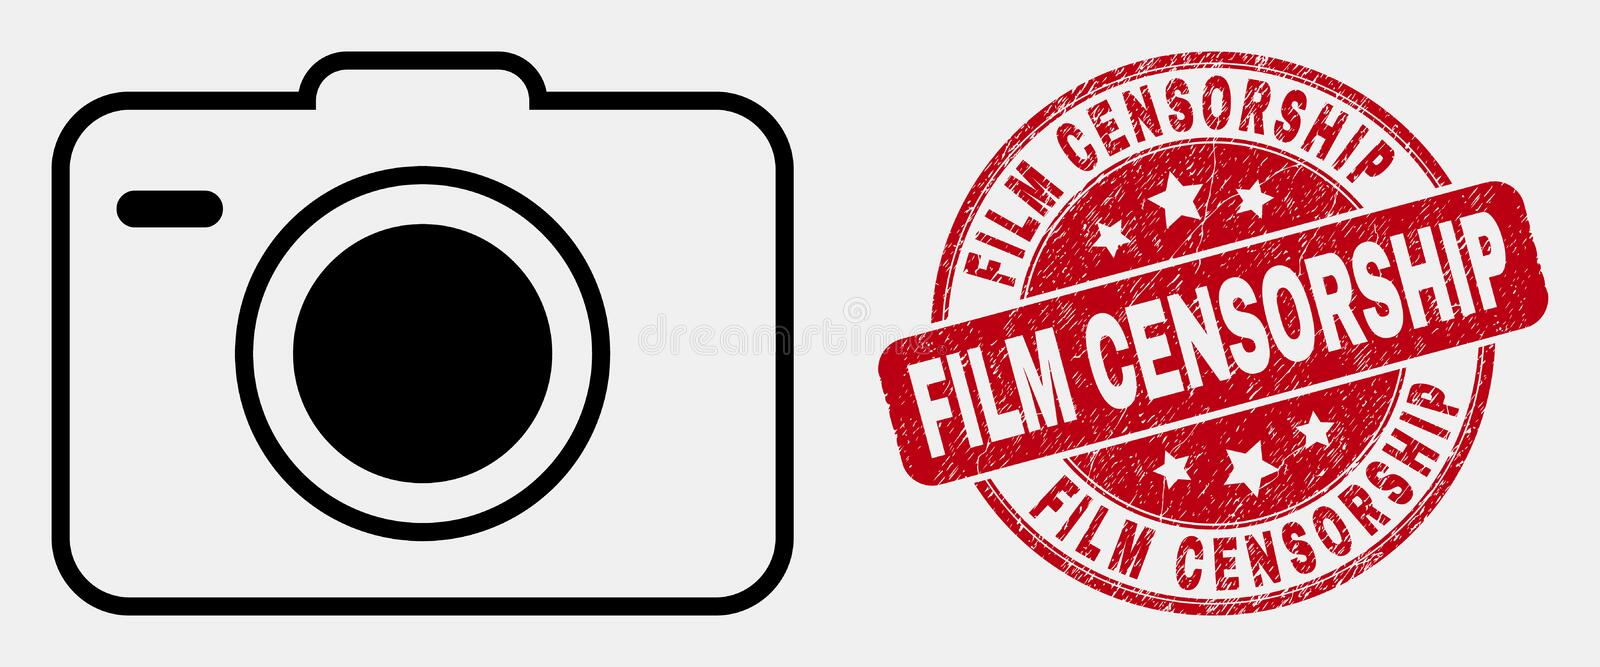 Vector Line Photo Camera Icon and Distress Film Censorship Watermark. Vector stroke photo camera pictogram and Film Censorship seal stamp. Blue round textured vector illustration